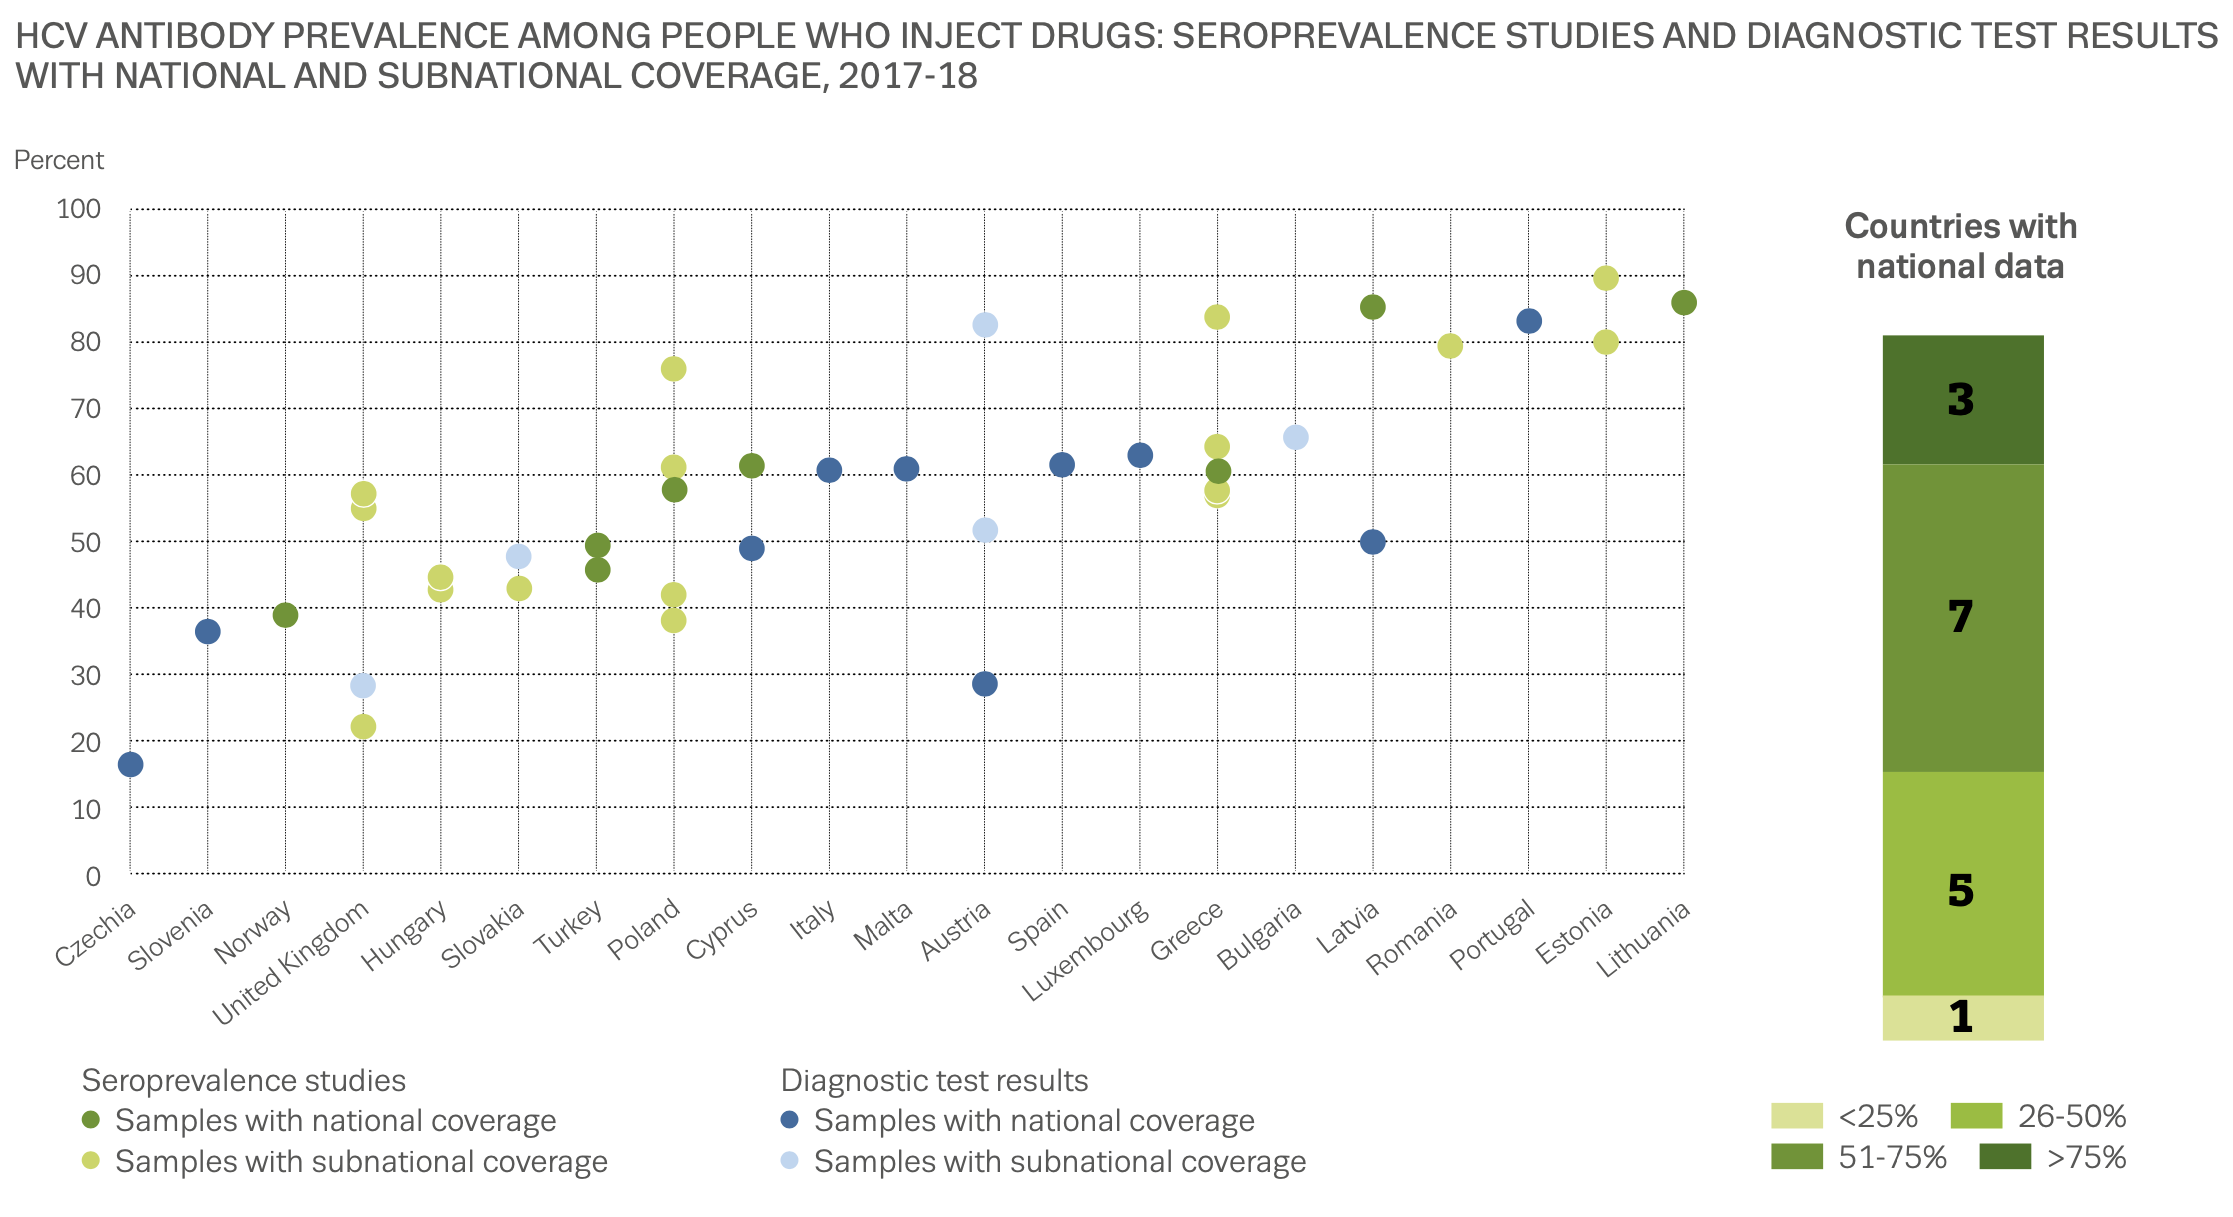 graph showing incidence of HCV seroprevalence among injecting drug users in Europe